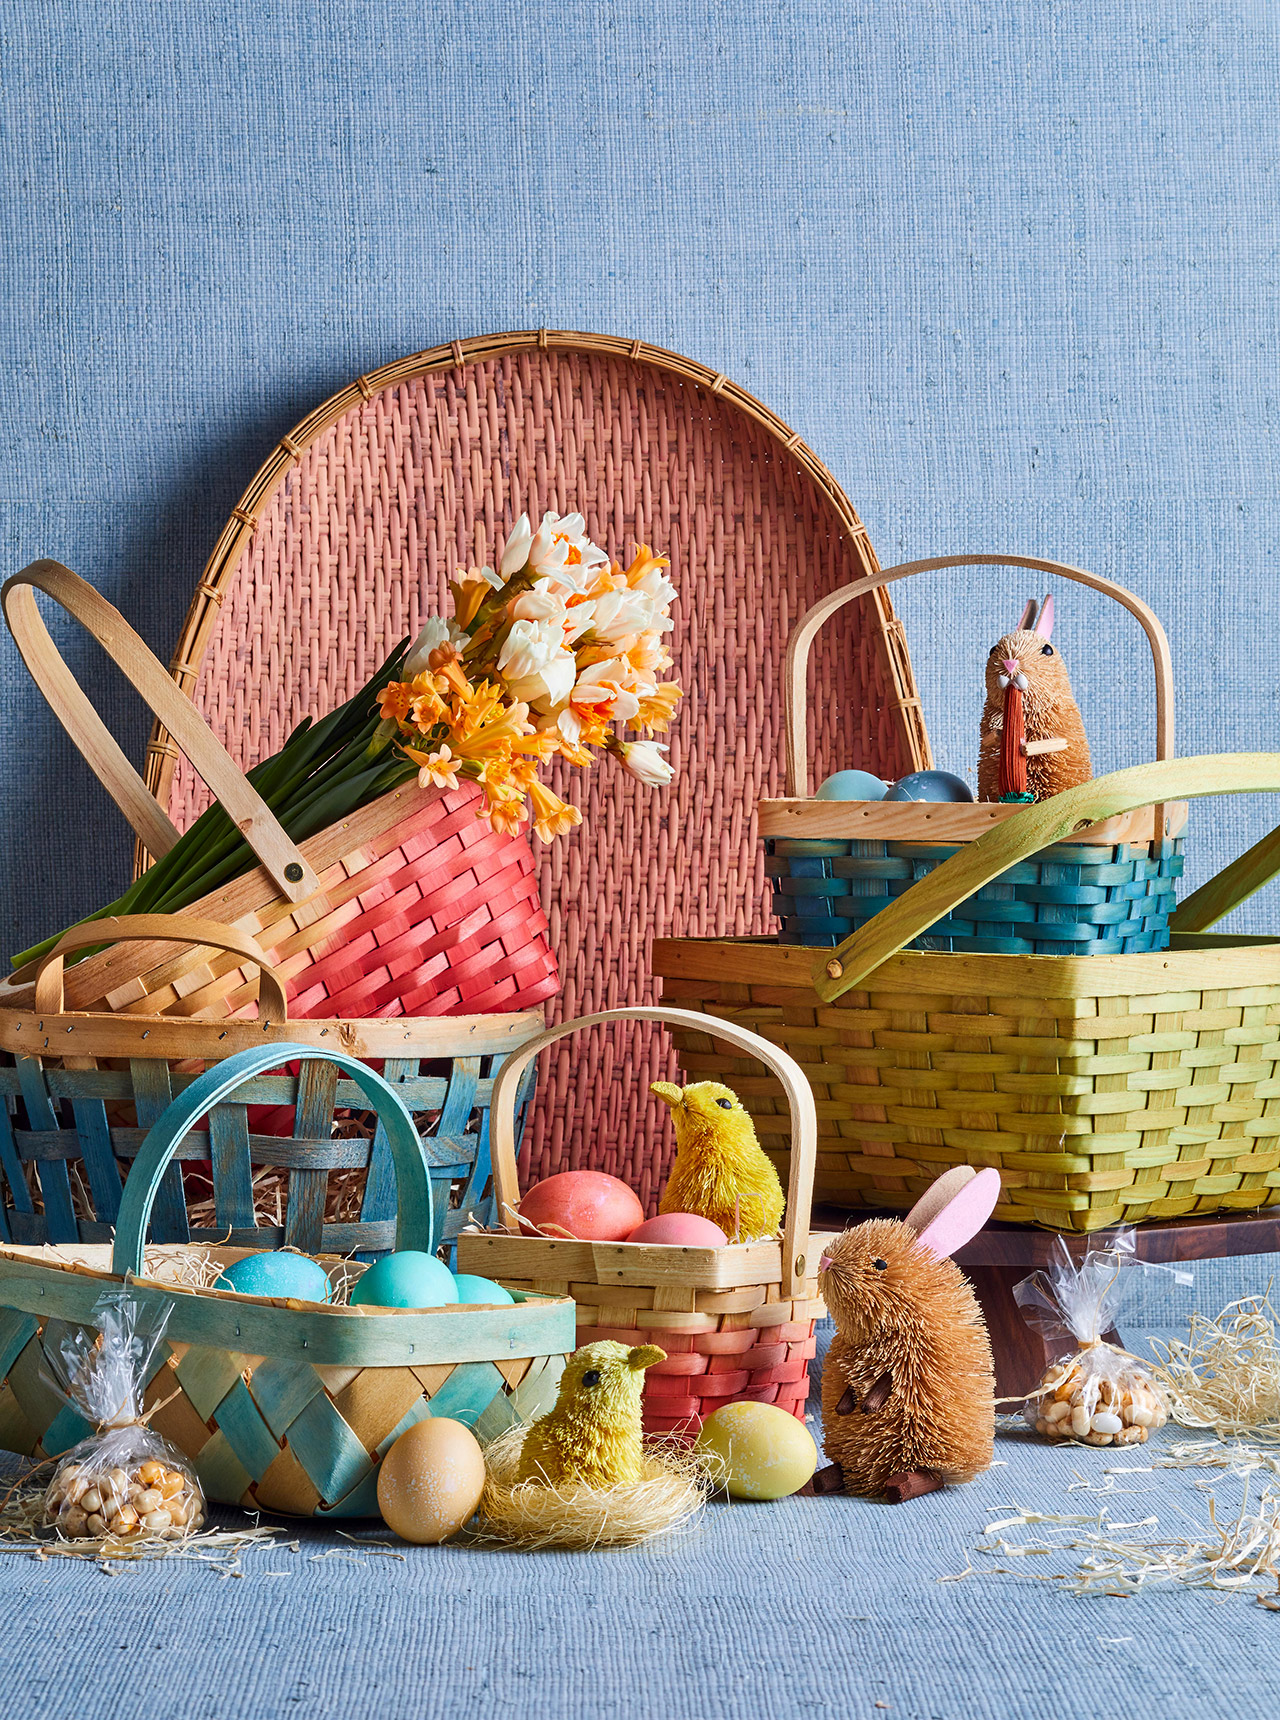 rainbow dye-dipped baskets and flowers